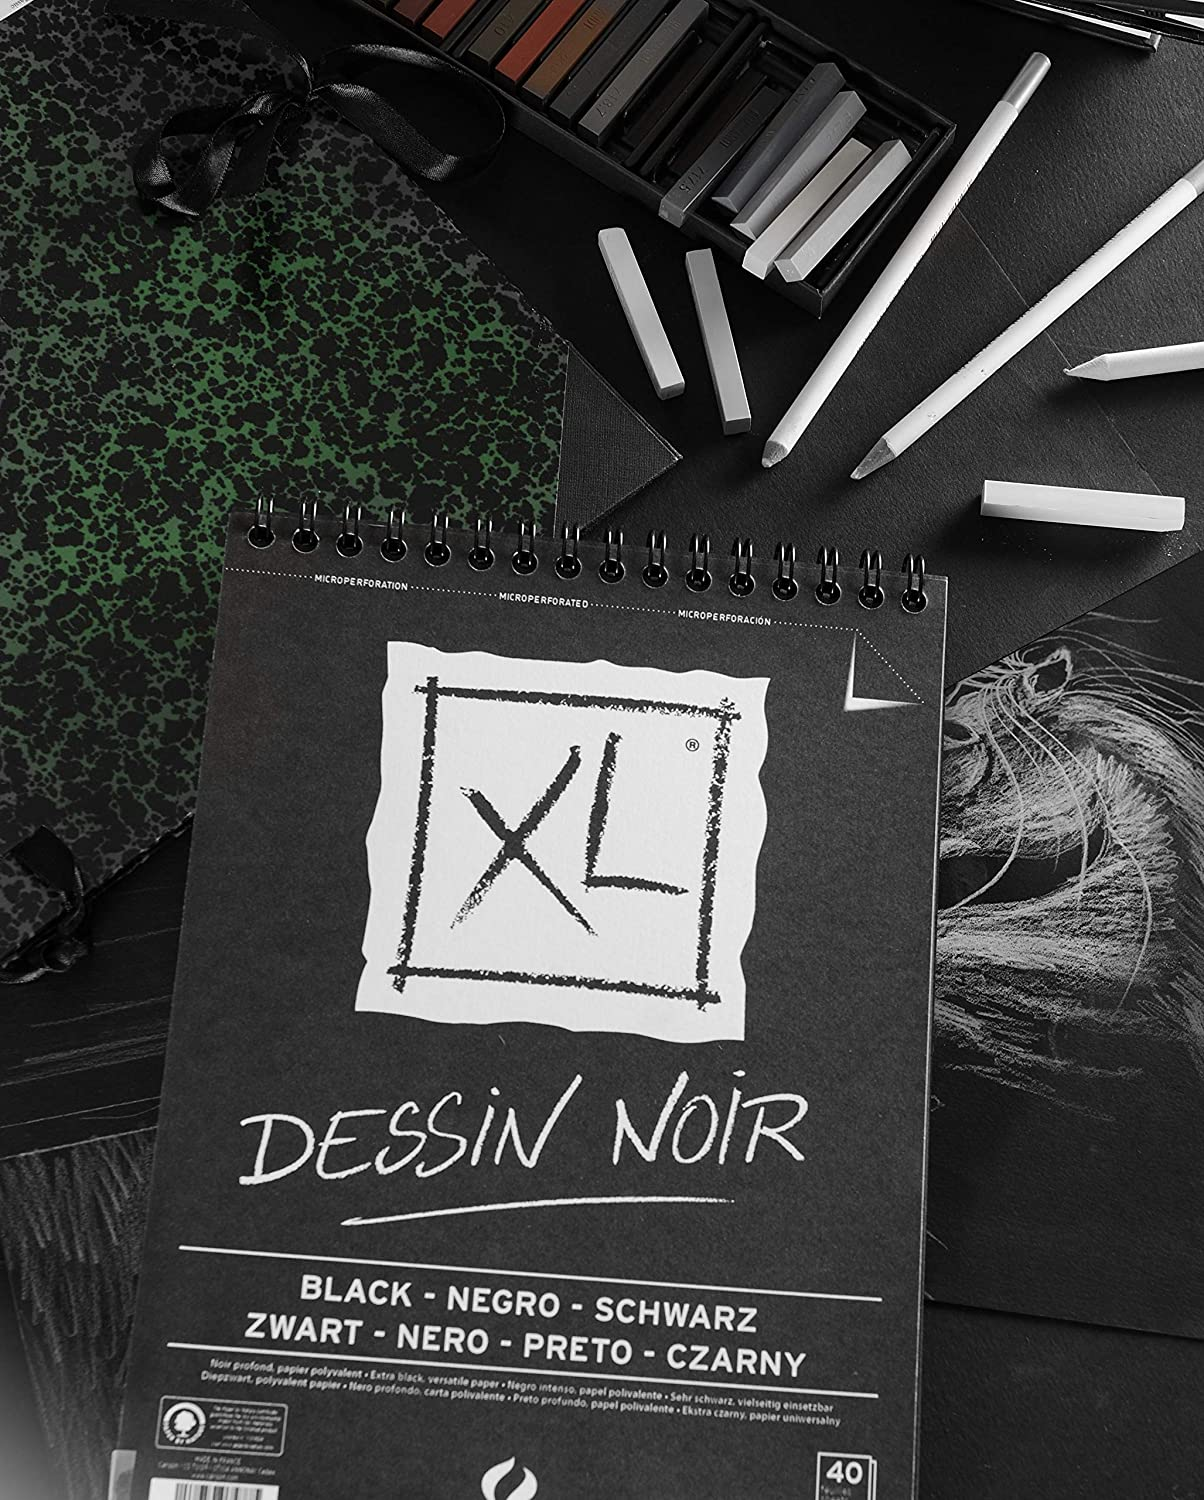 Canson XL Dessin Noir Black Paper Sketch Pad - thestationerycompany.pk